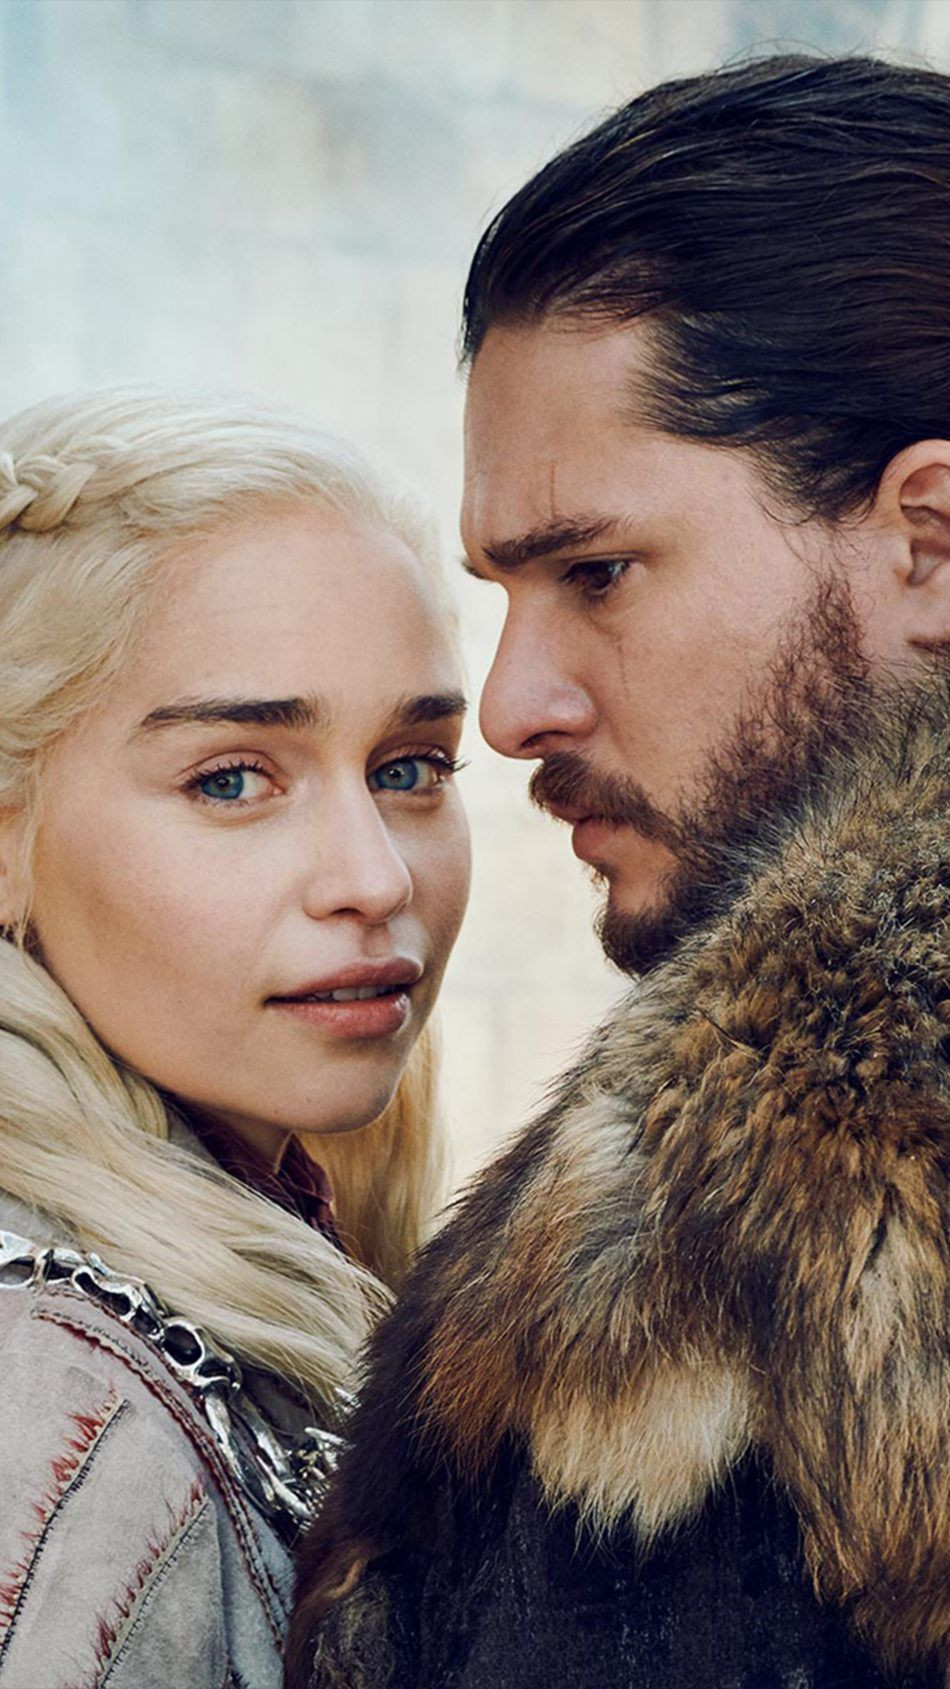 Daenerys Targaryen & Jon Snow Game of Thrones S8 4K Ultra HD Mobile Wallpaper